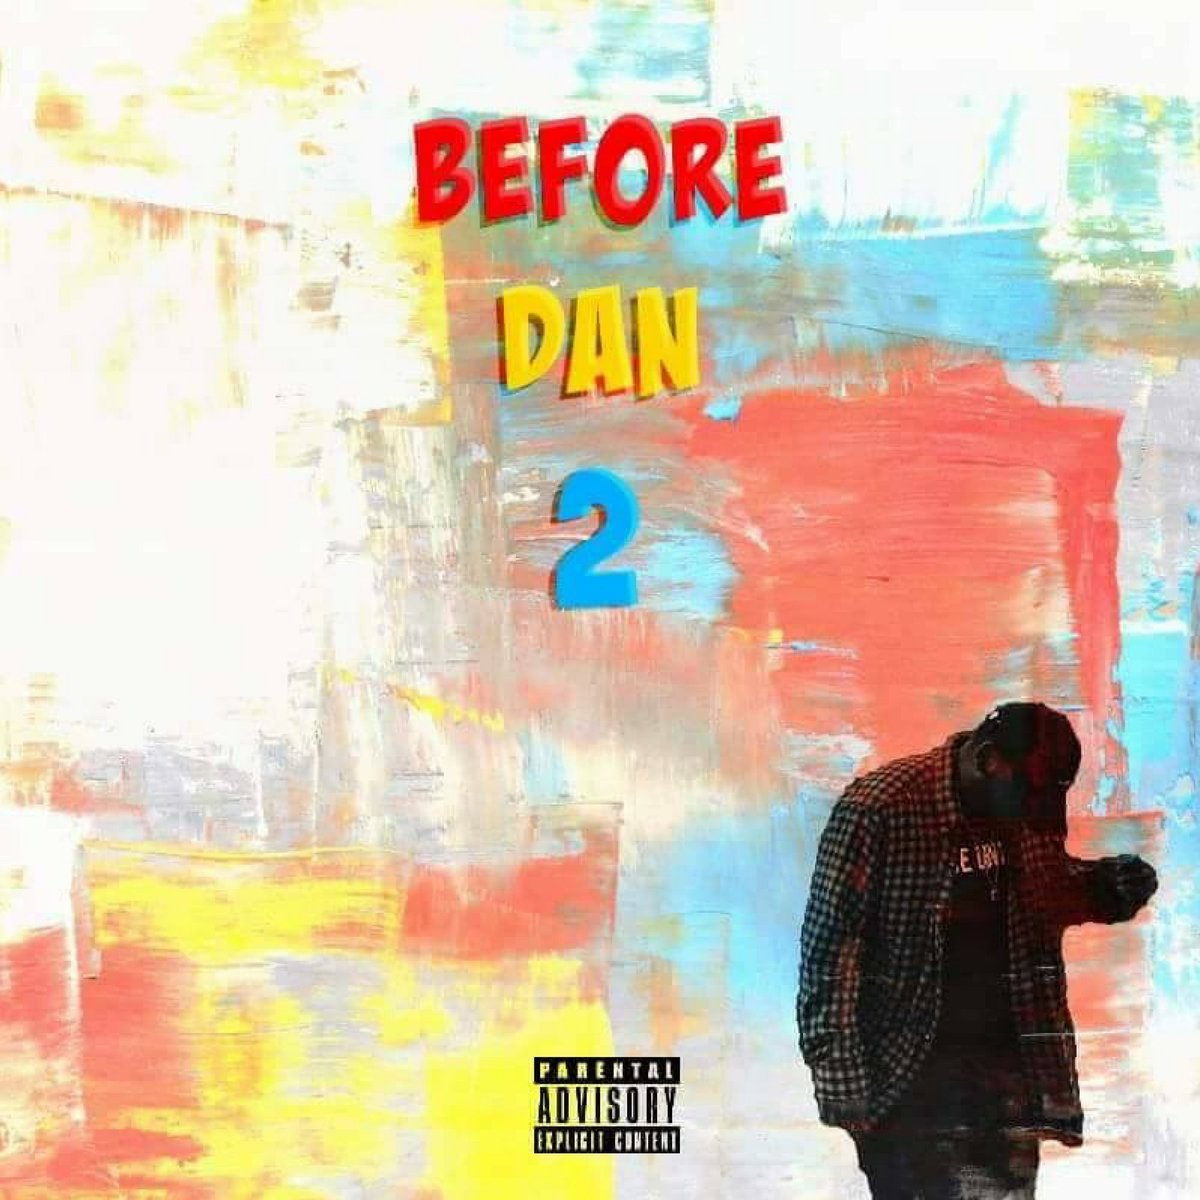 Before Dan 2 out online everywhere tomorrow! Buy it, stream it, check it out! @GrizzlyDonLife #hiphopmusic #rapmusic #rap #radio #dj #blog<br>http://pic.twitter.com/RacQuFy0Do